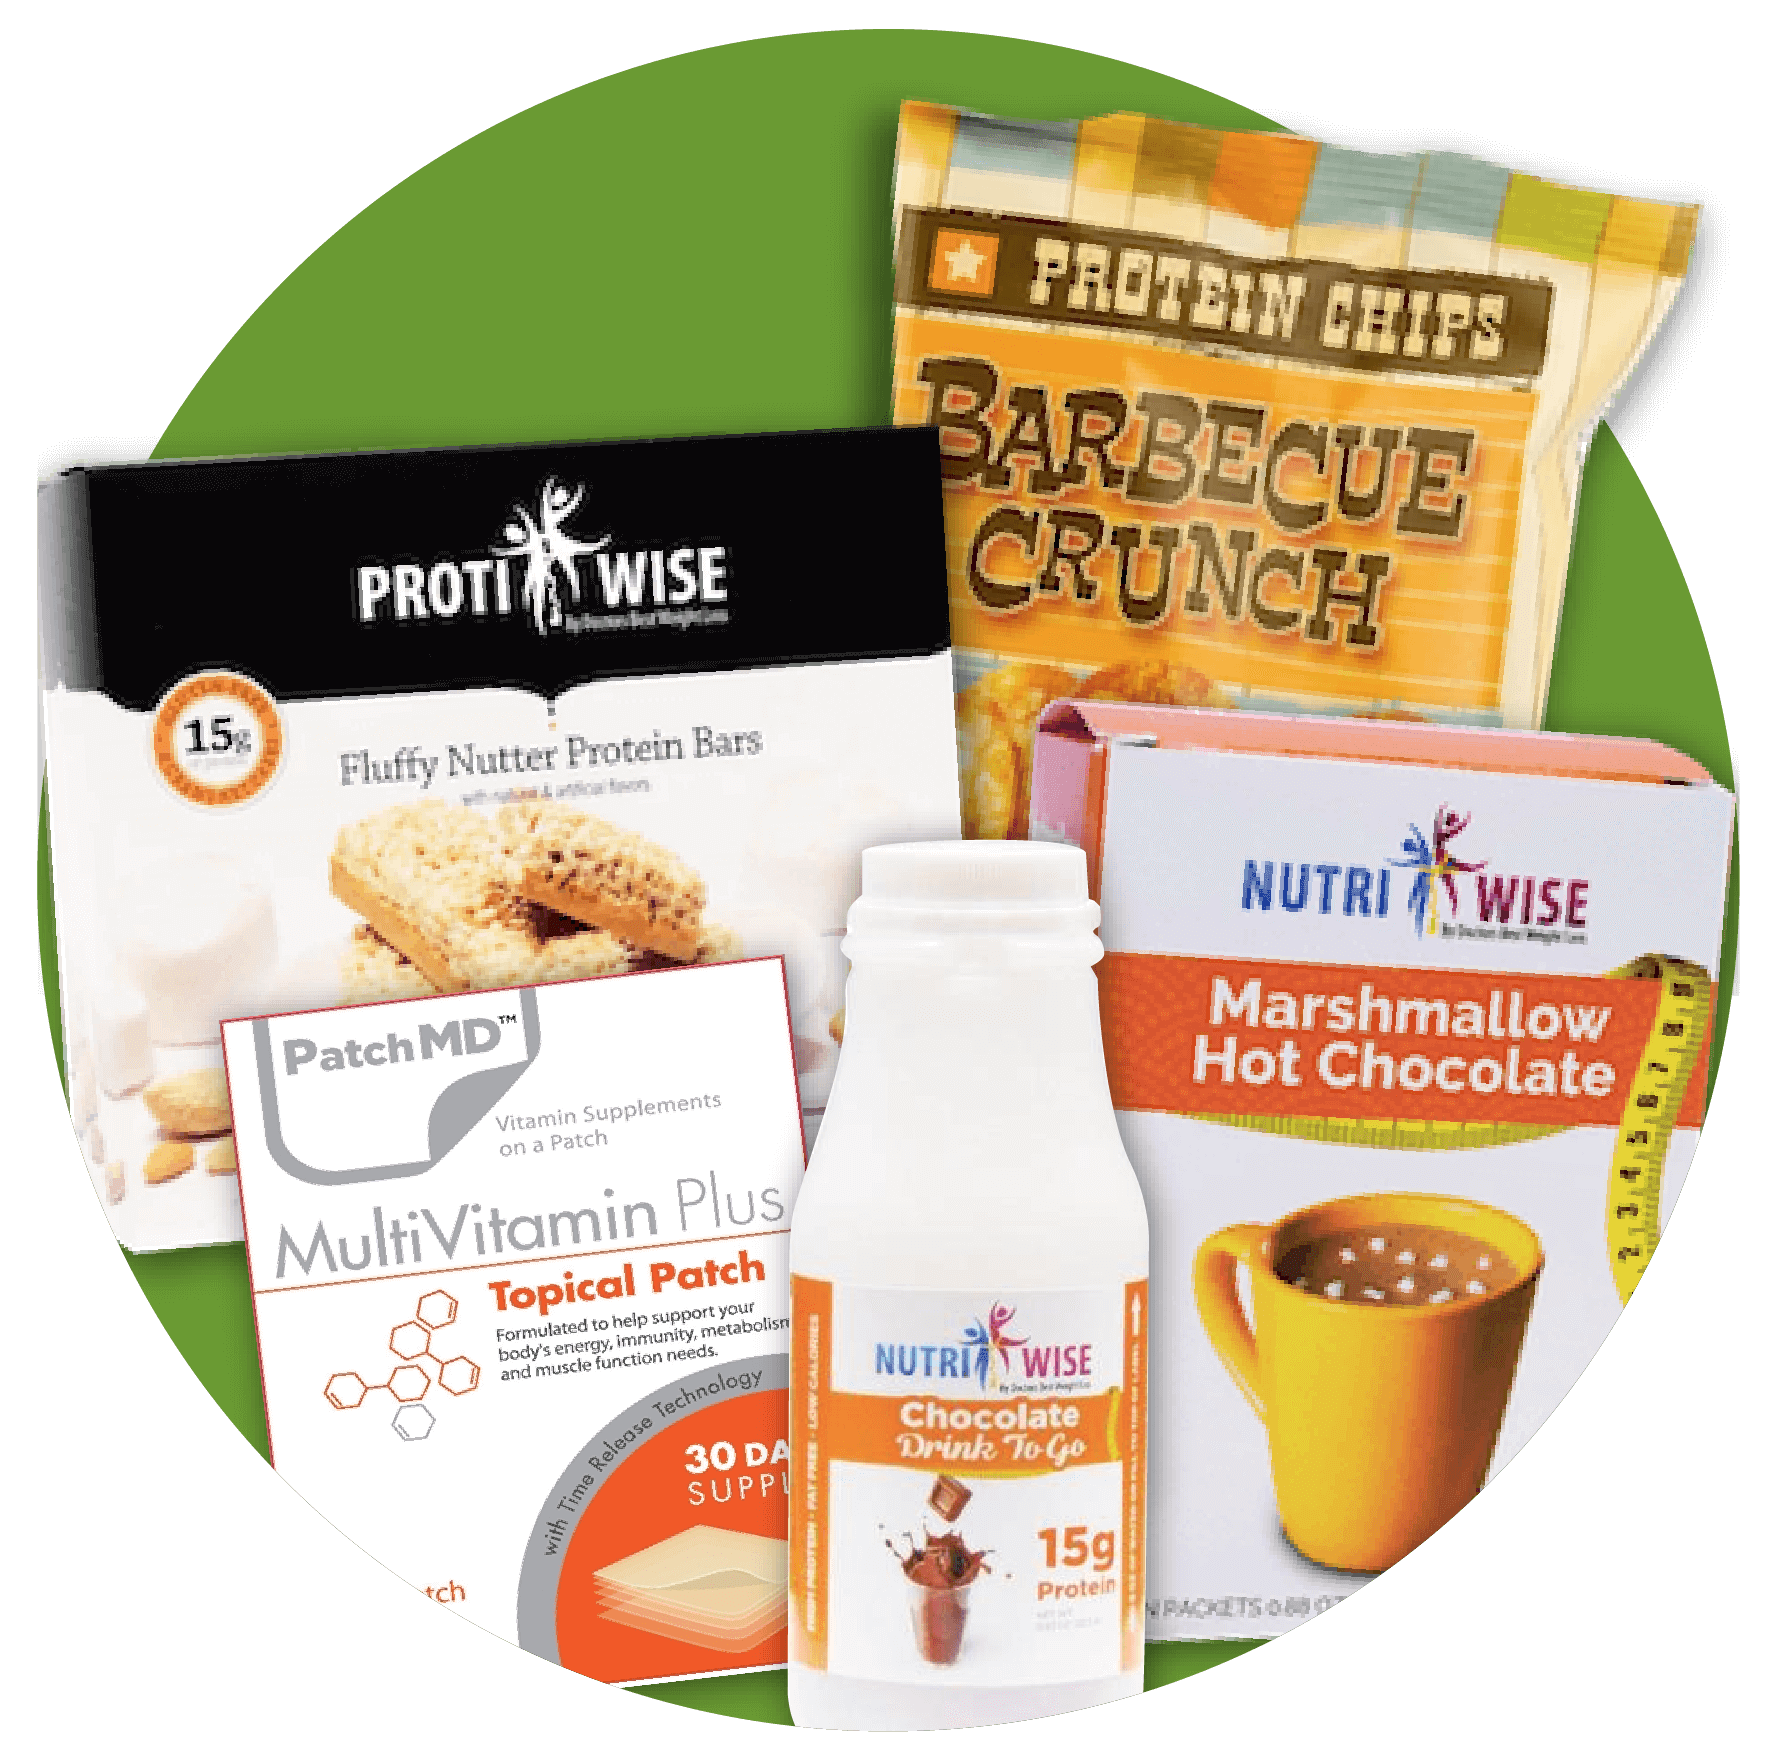 ProtiWise Fluffy Protein Bars box, Barbecue Crunch Protein Chips, NutriWise Marshmallow Hot Chocolate, PatchMD Multivitamin Plus Tropical Patch